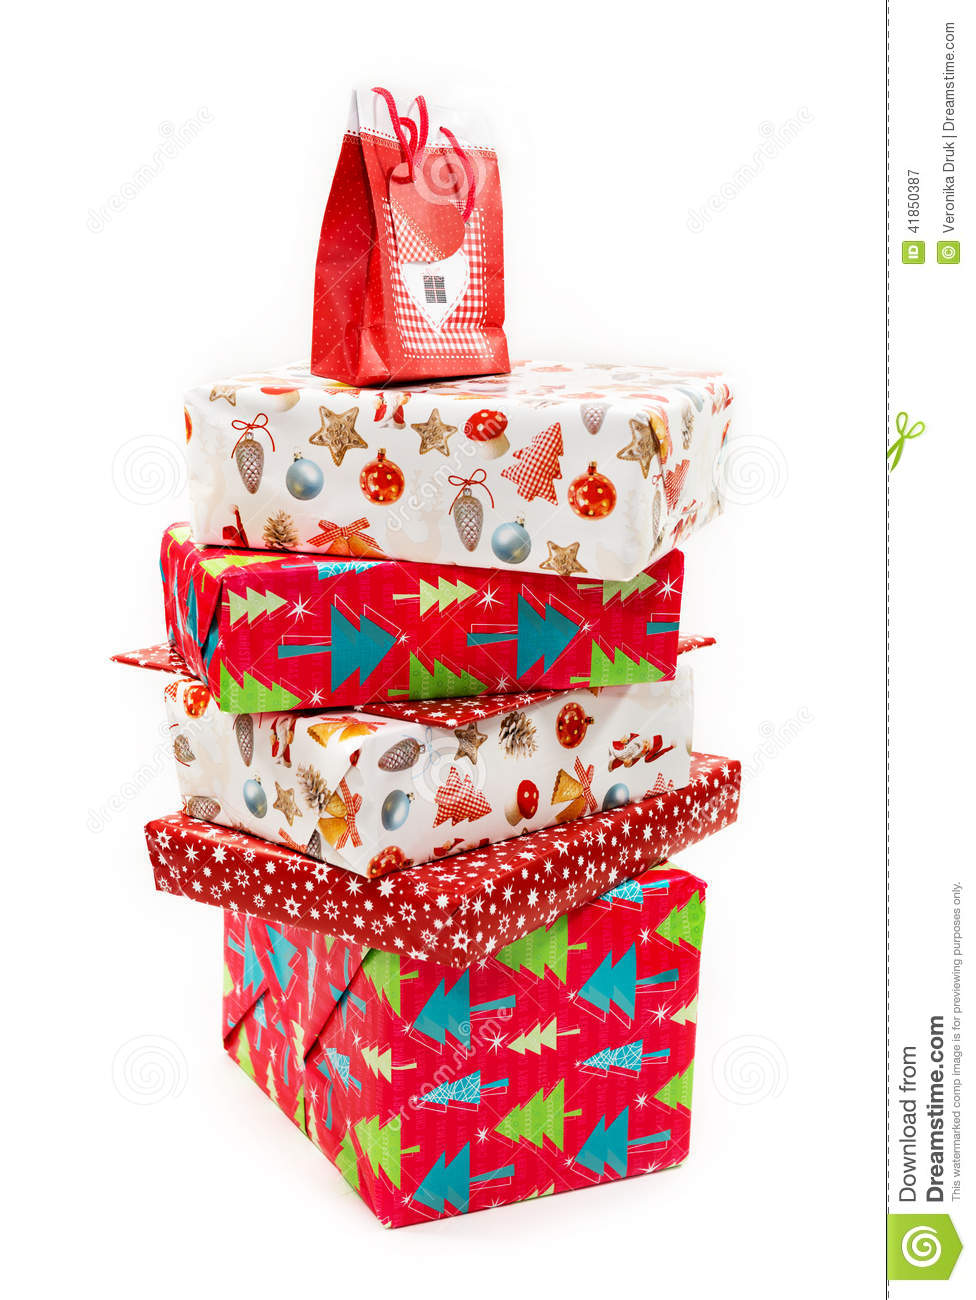 Stack Of Christmas Presents Boxes Stock Photo - Image: 41850387